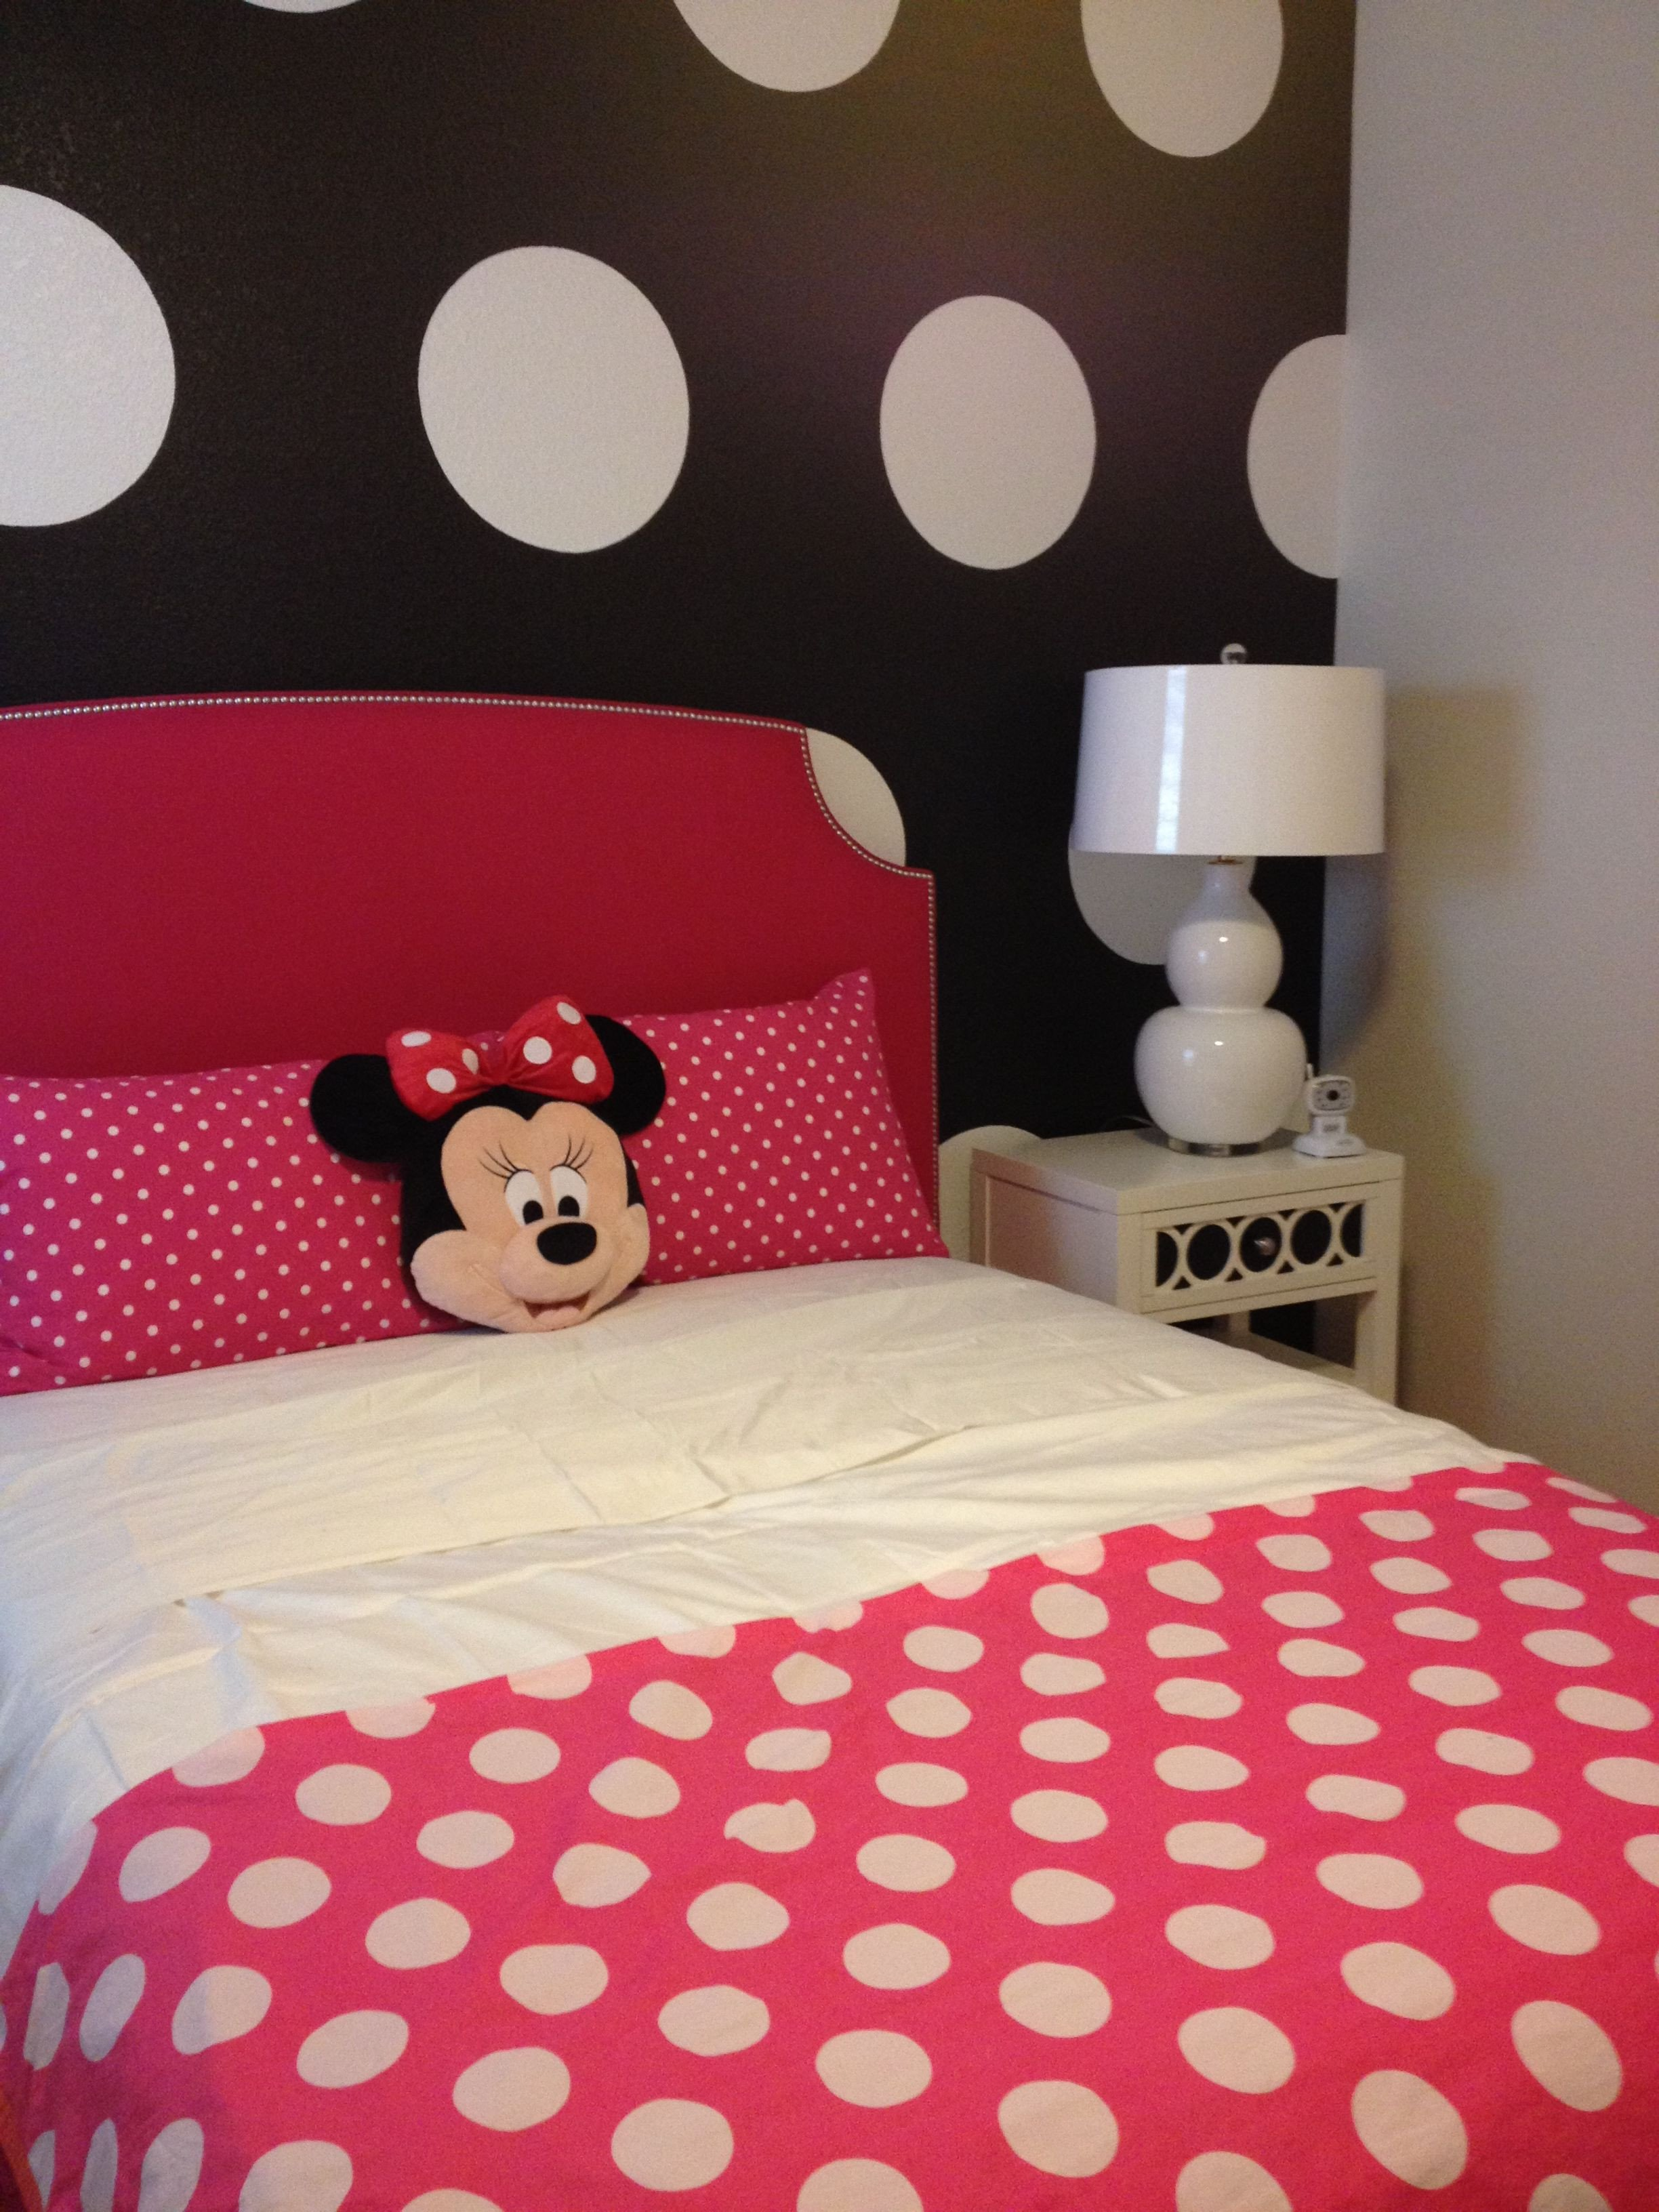 Minnie Mouse Bedroom Set Awesome Minnie Mouse Polka Dots Baby Minnie Mouse